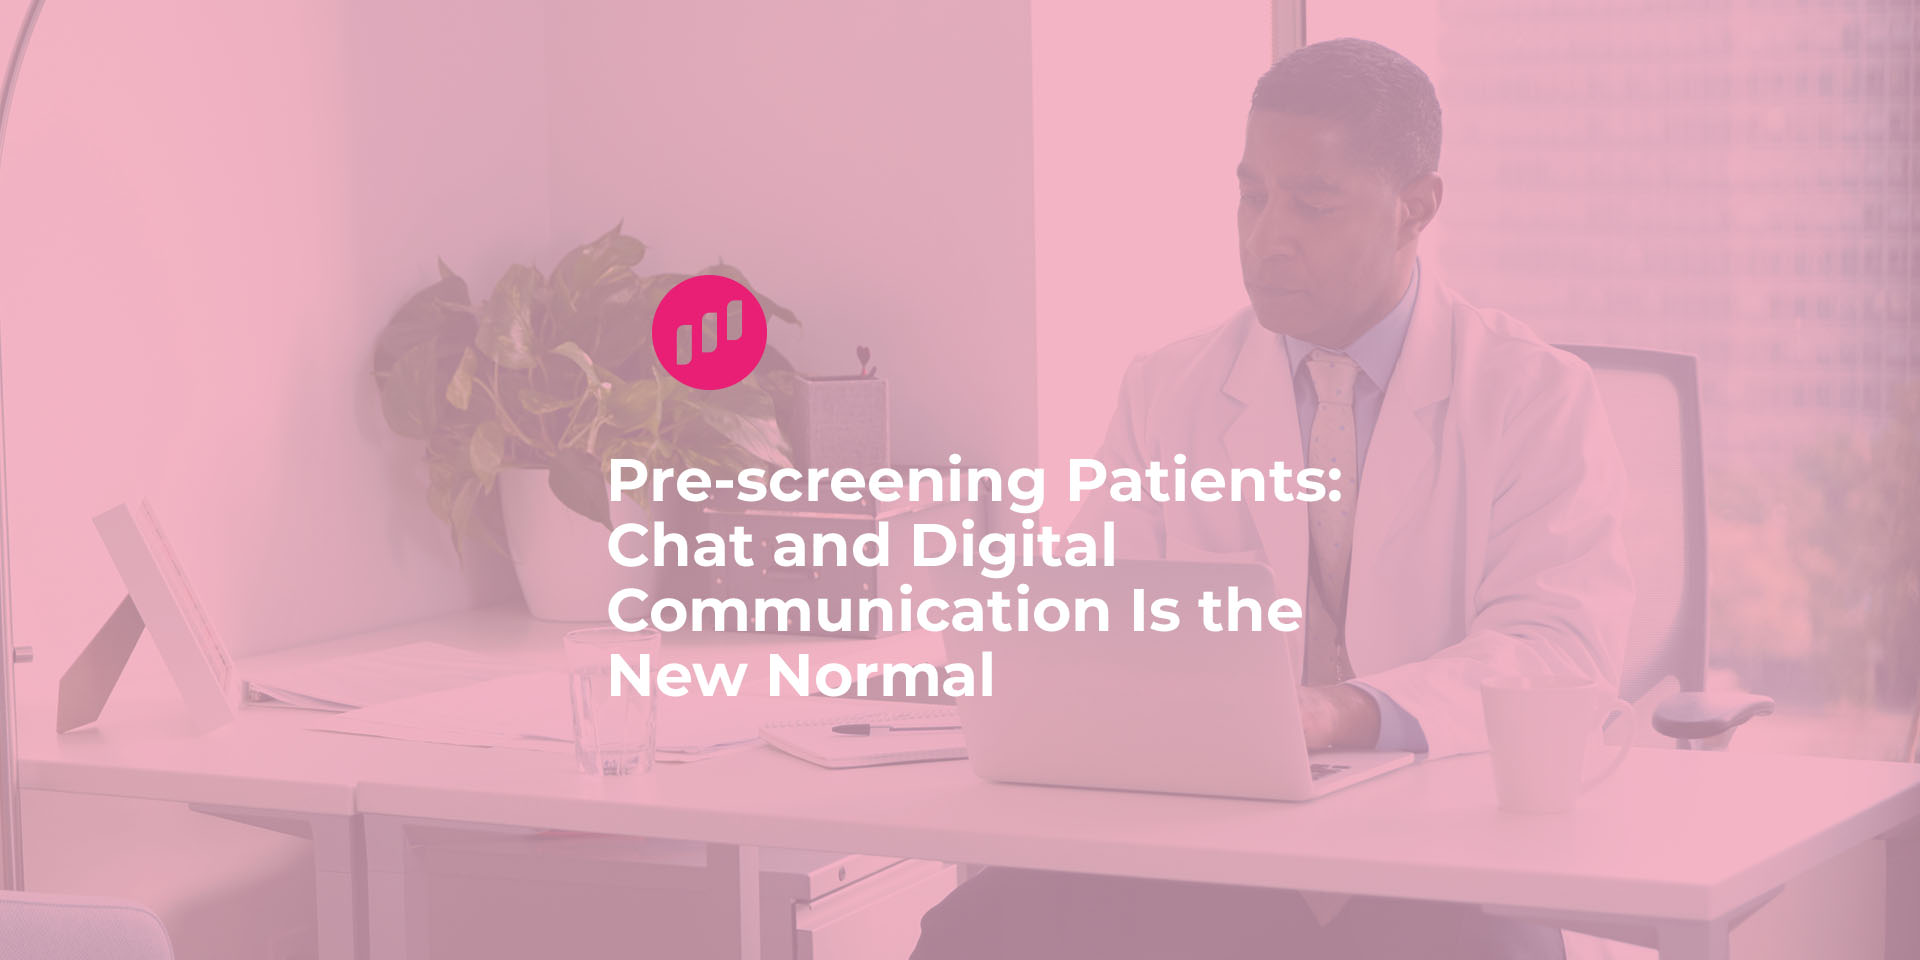 Pre-screening Patients- Chat and Digital Communication Is the New Normal